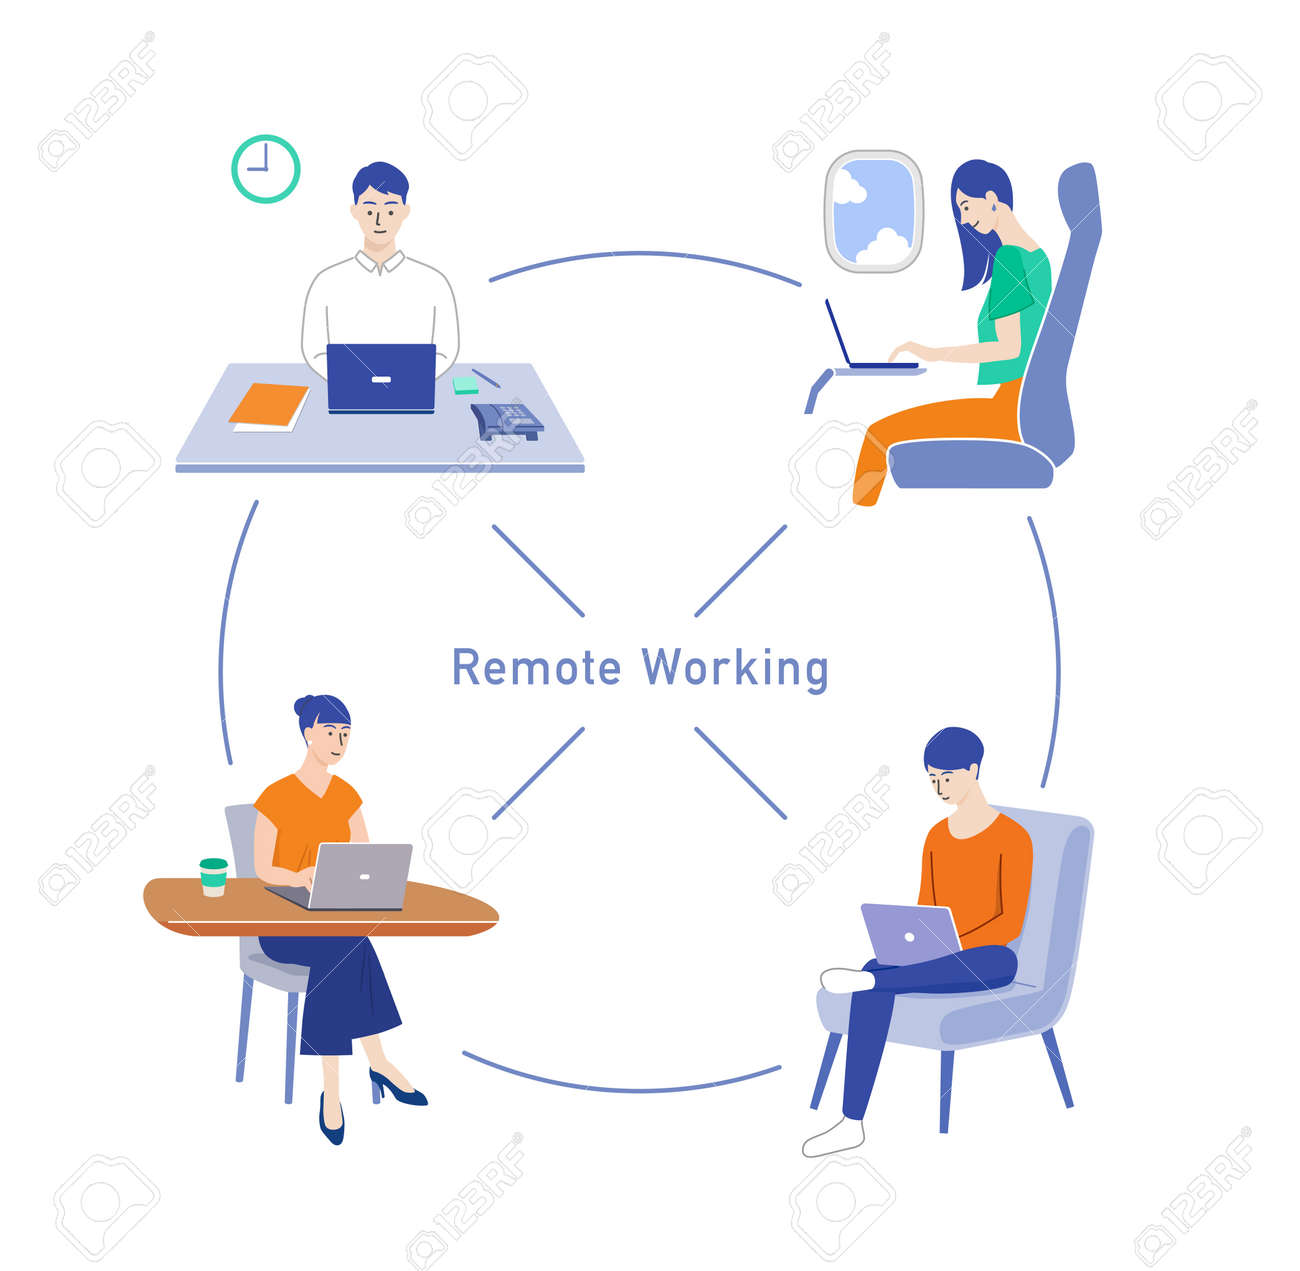 People doing remote work and telework - 169140559